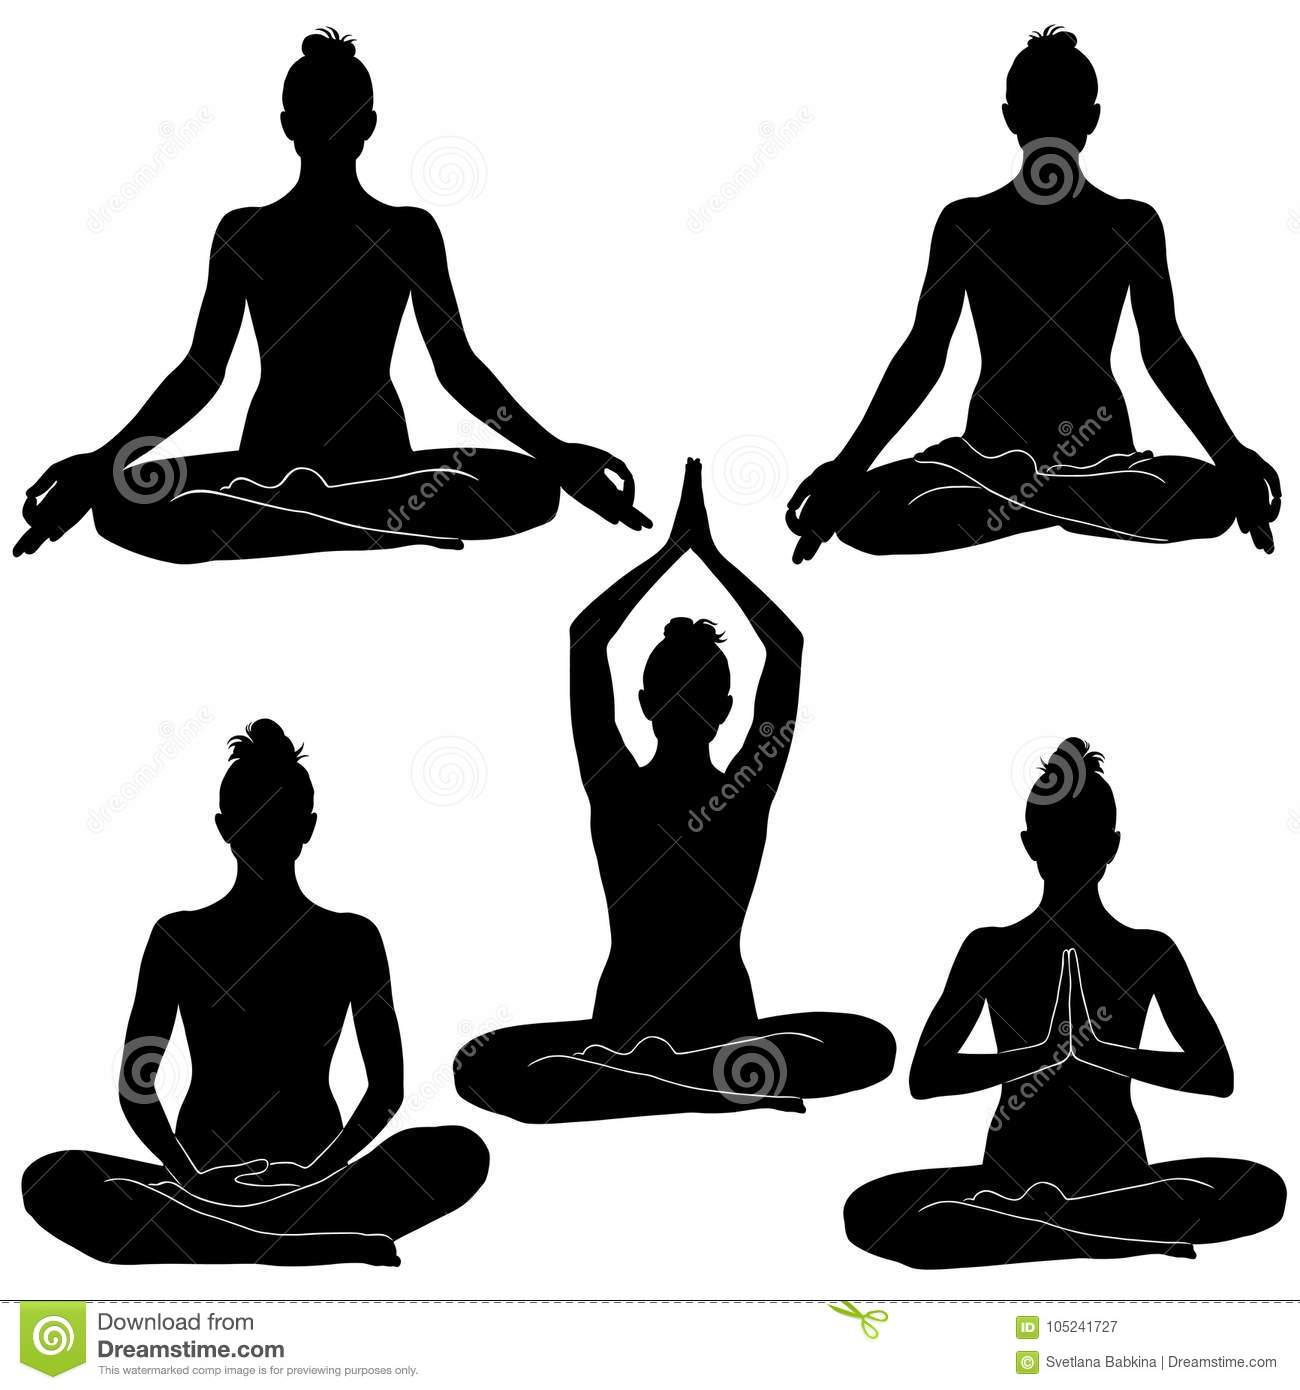 Silhouettes Of Woman Sitting With Legs Crossed In Different Positions Yoga Pose For Relaxation And Meditation